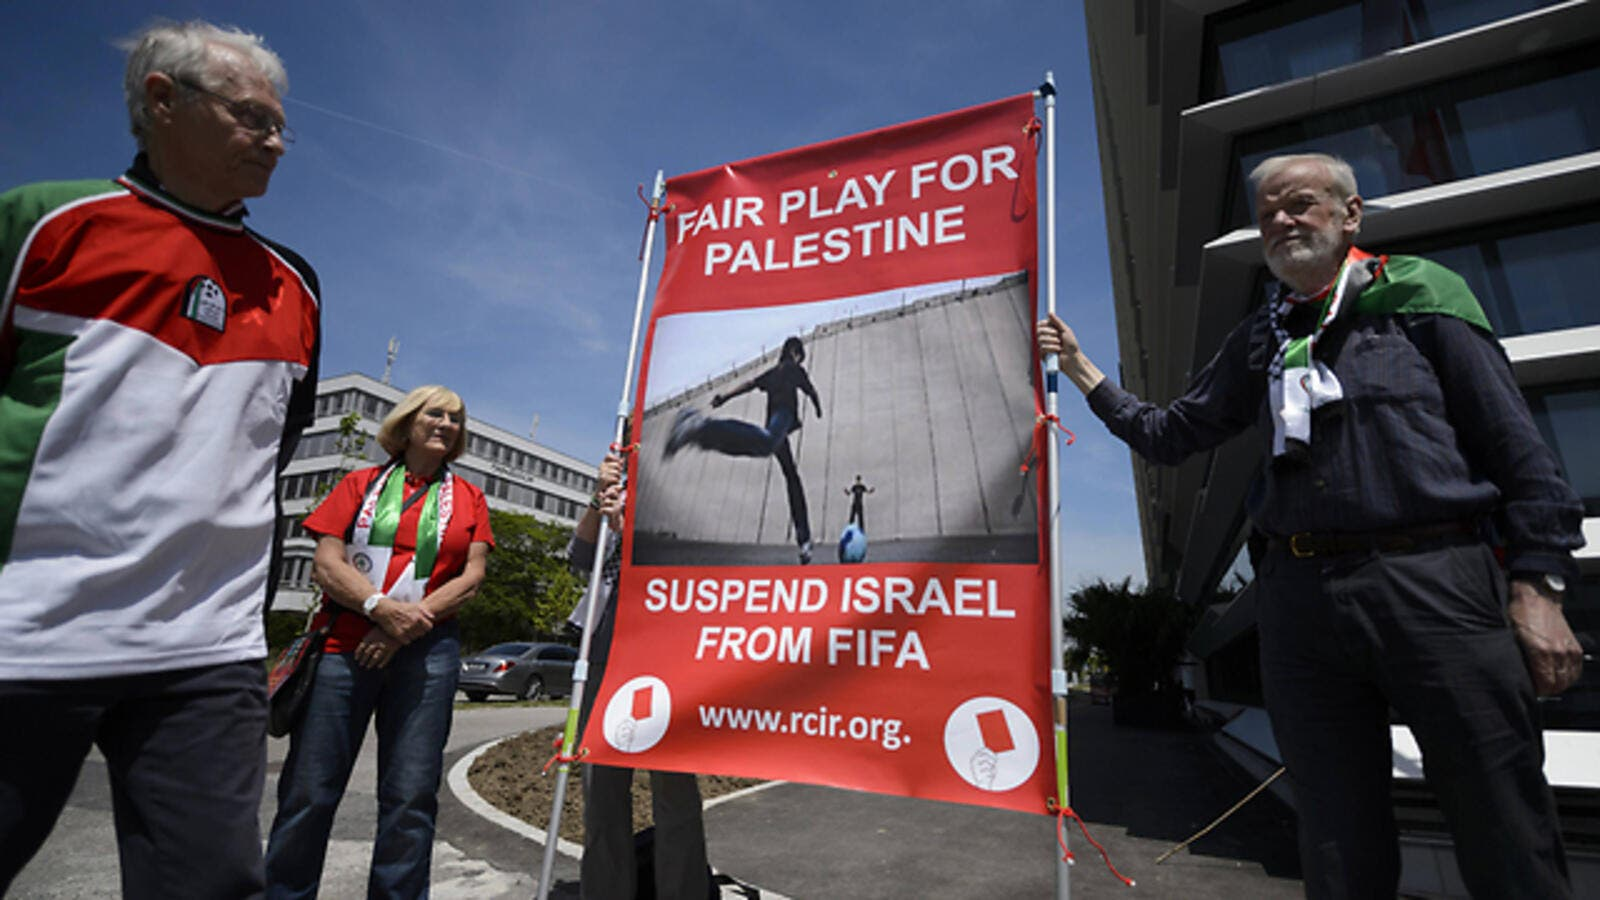 Protesters in Zurich call for Israel's suspension from FIFA. (AFP/File)